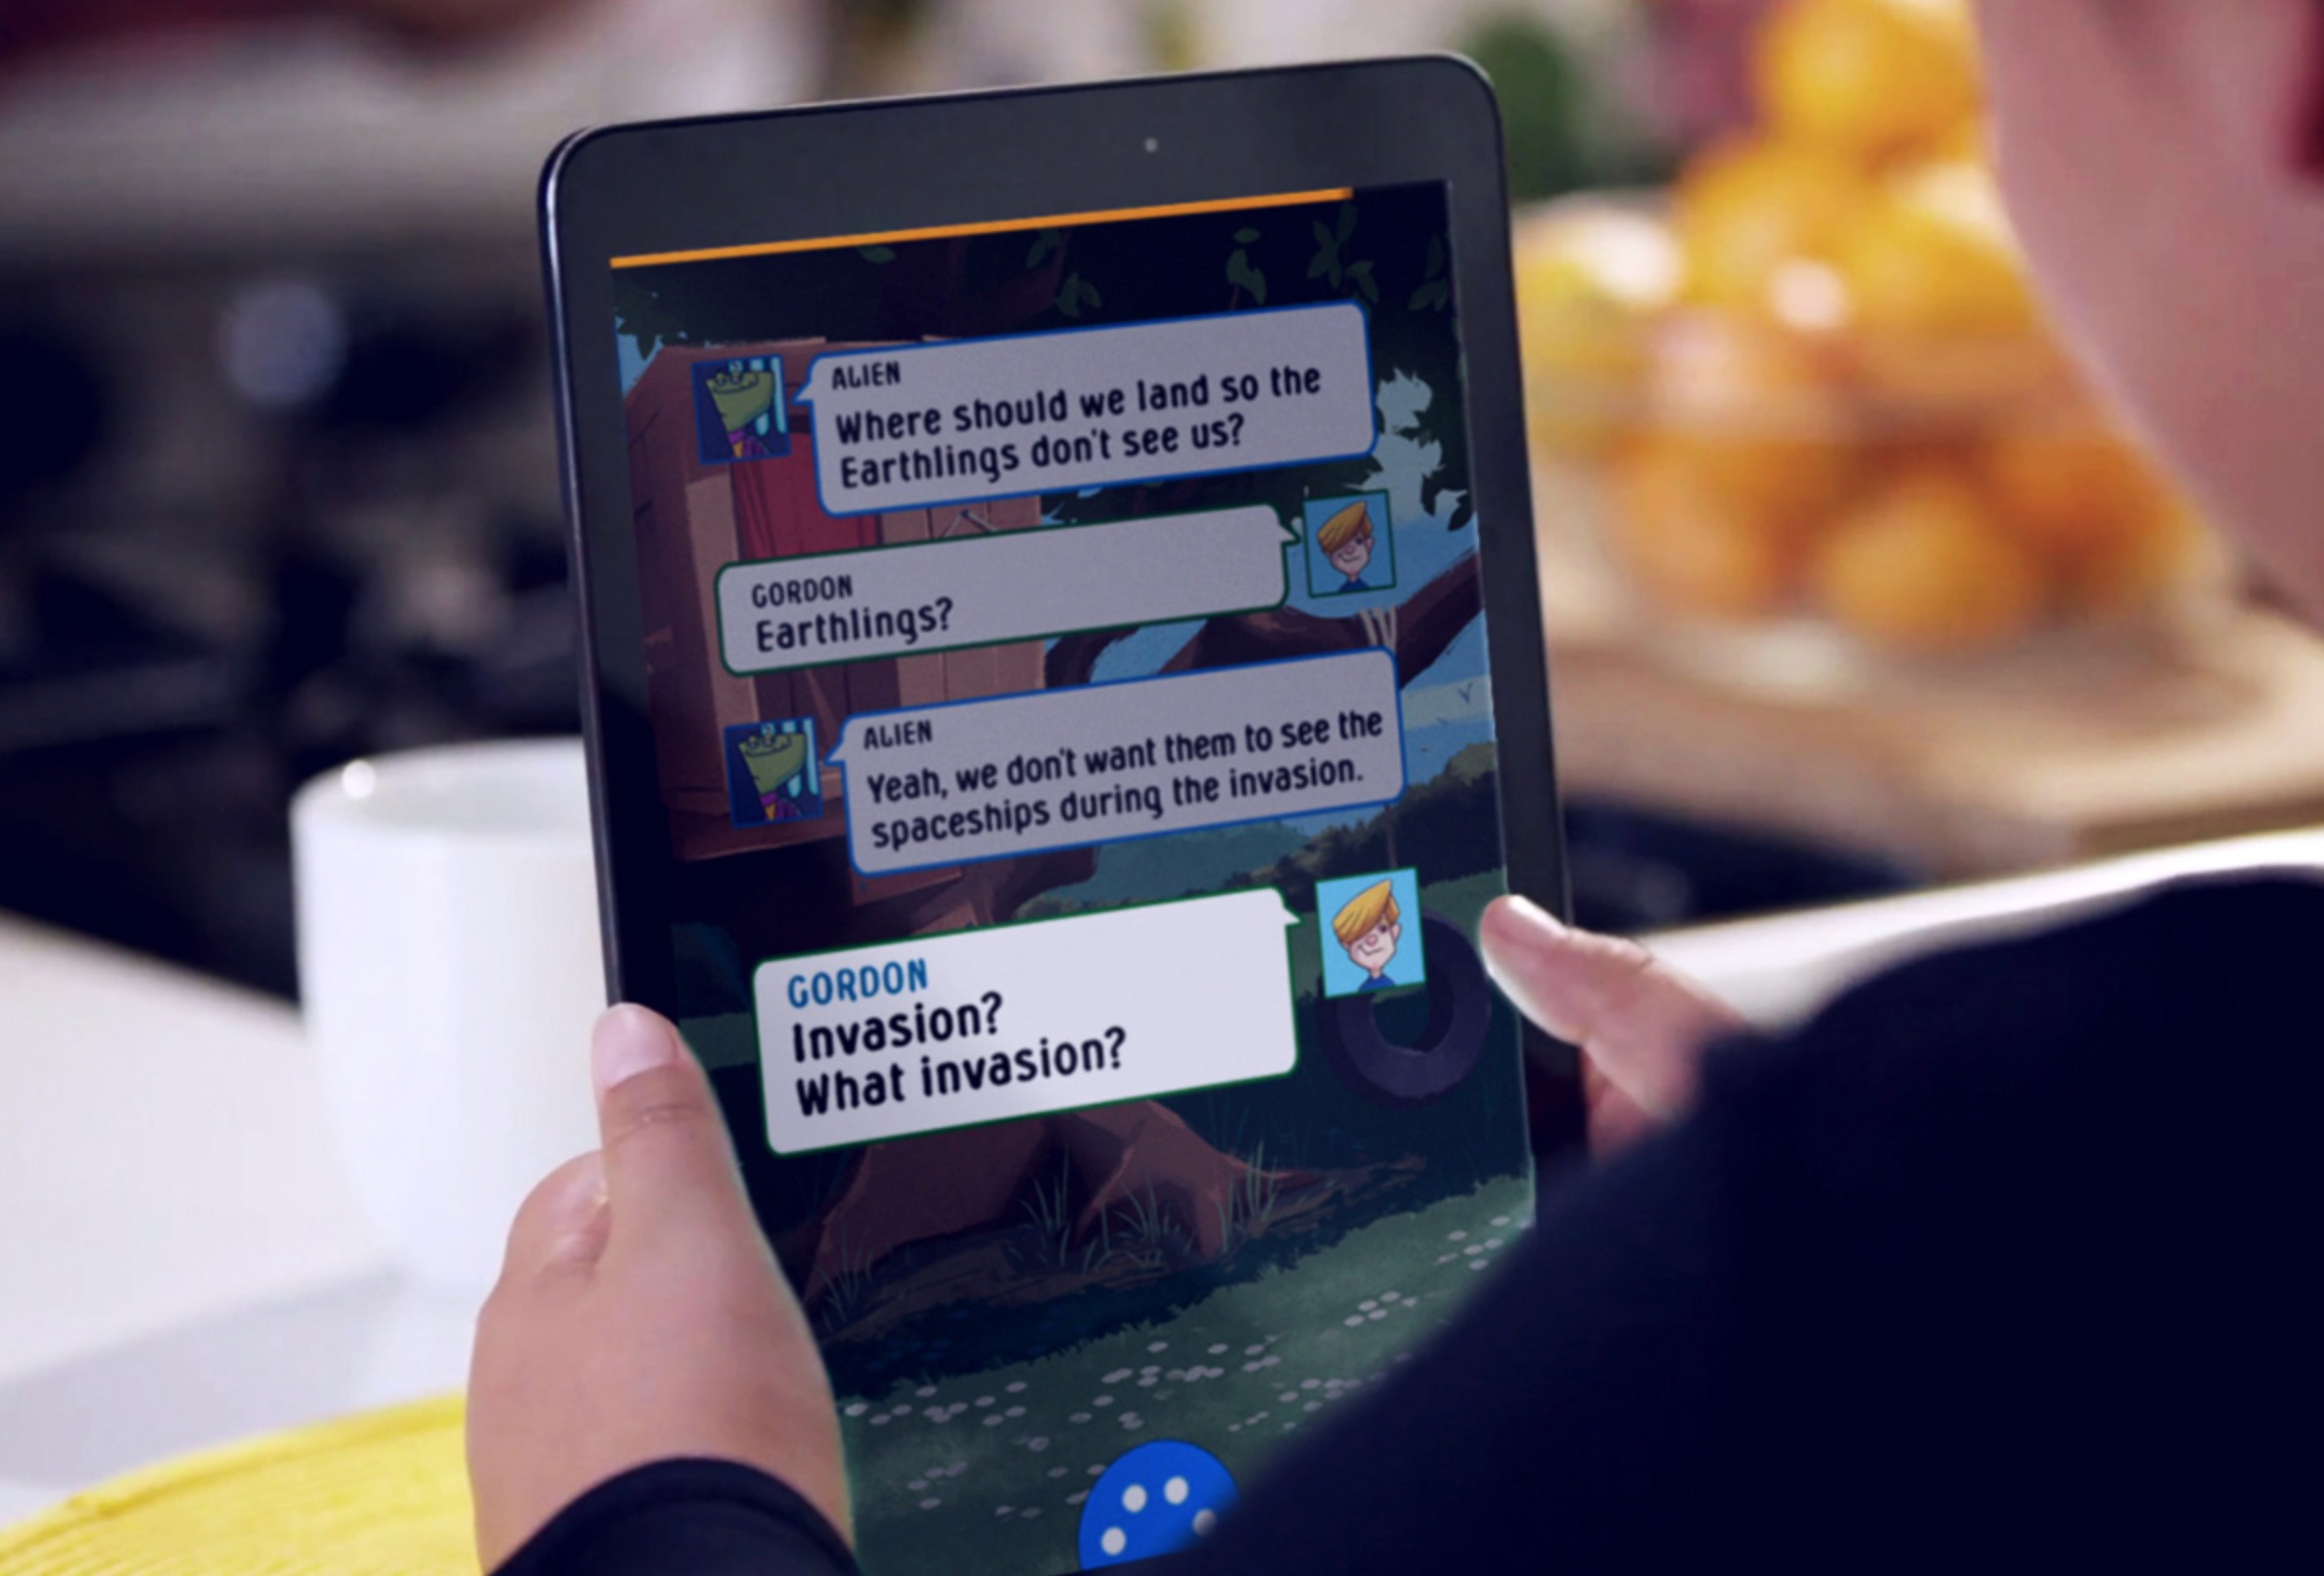 Amazon Rapids, favole raccontate in forma di chat